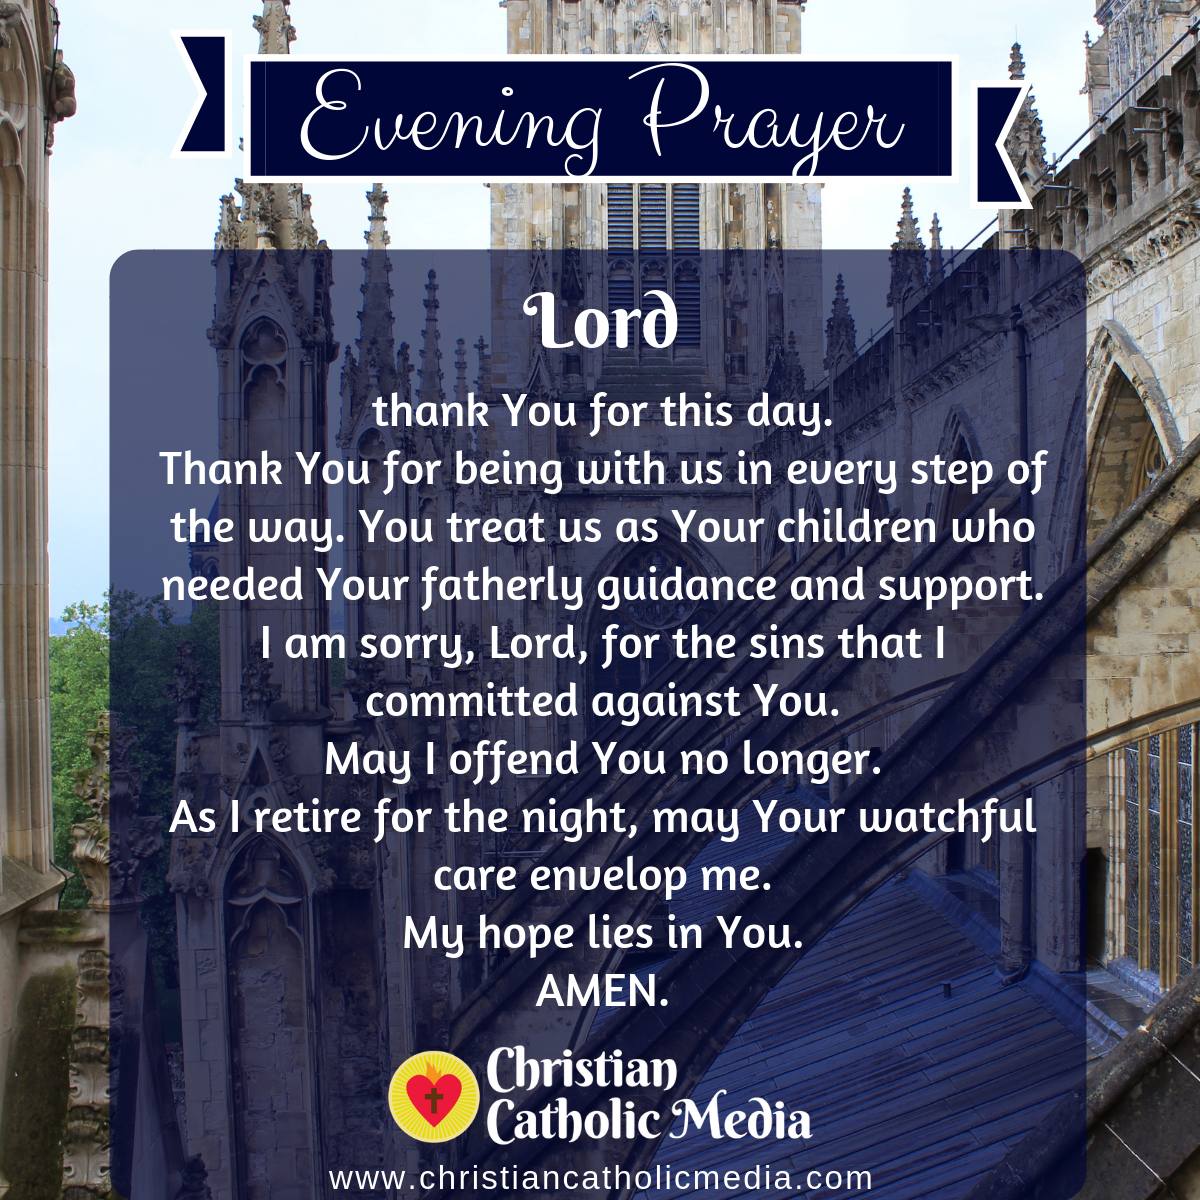 Evening Prayer Catholic Tuesday 6-16-2020